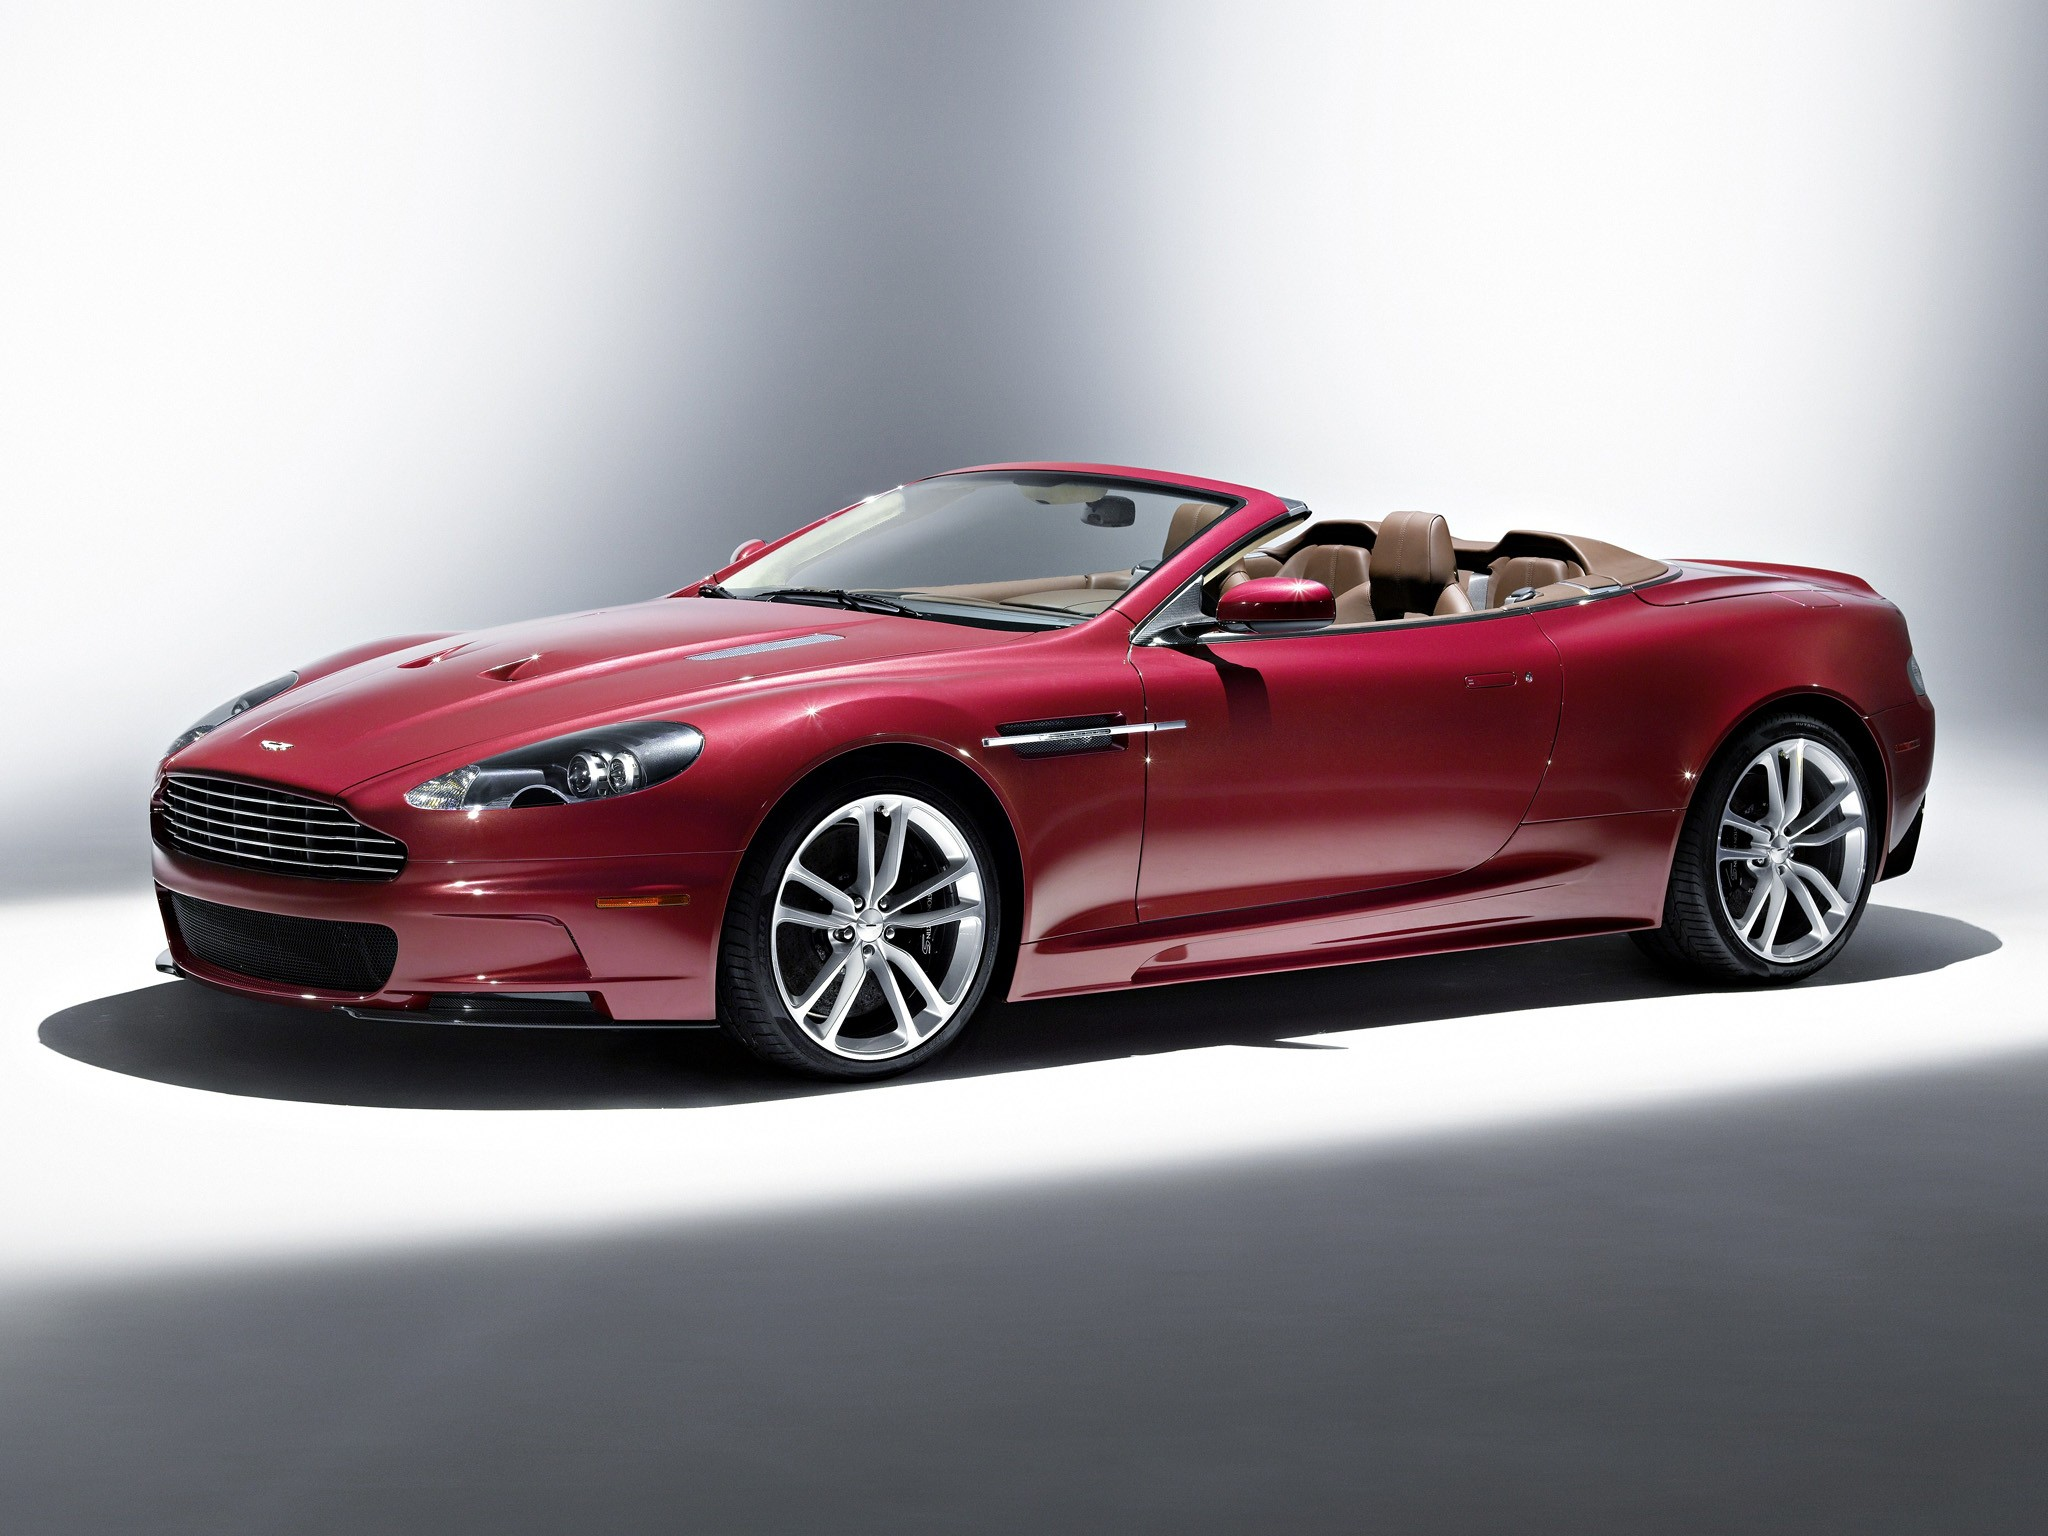 aston martin dbs volante specs 2009 2010 2011 2012 autoevolution. Black Bedroom Furniture Sets. Home Design Ideas